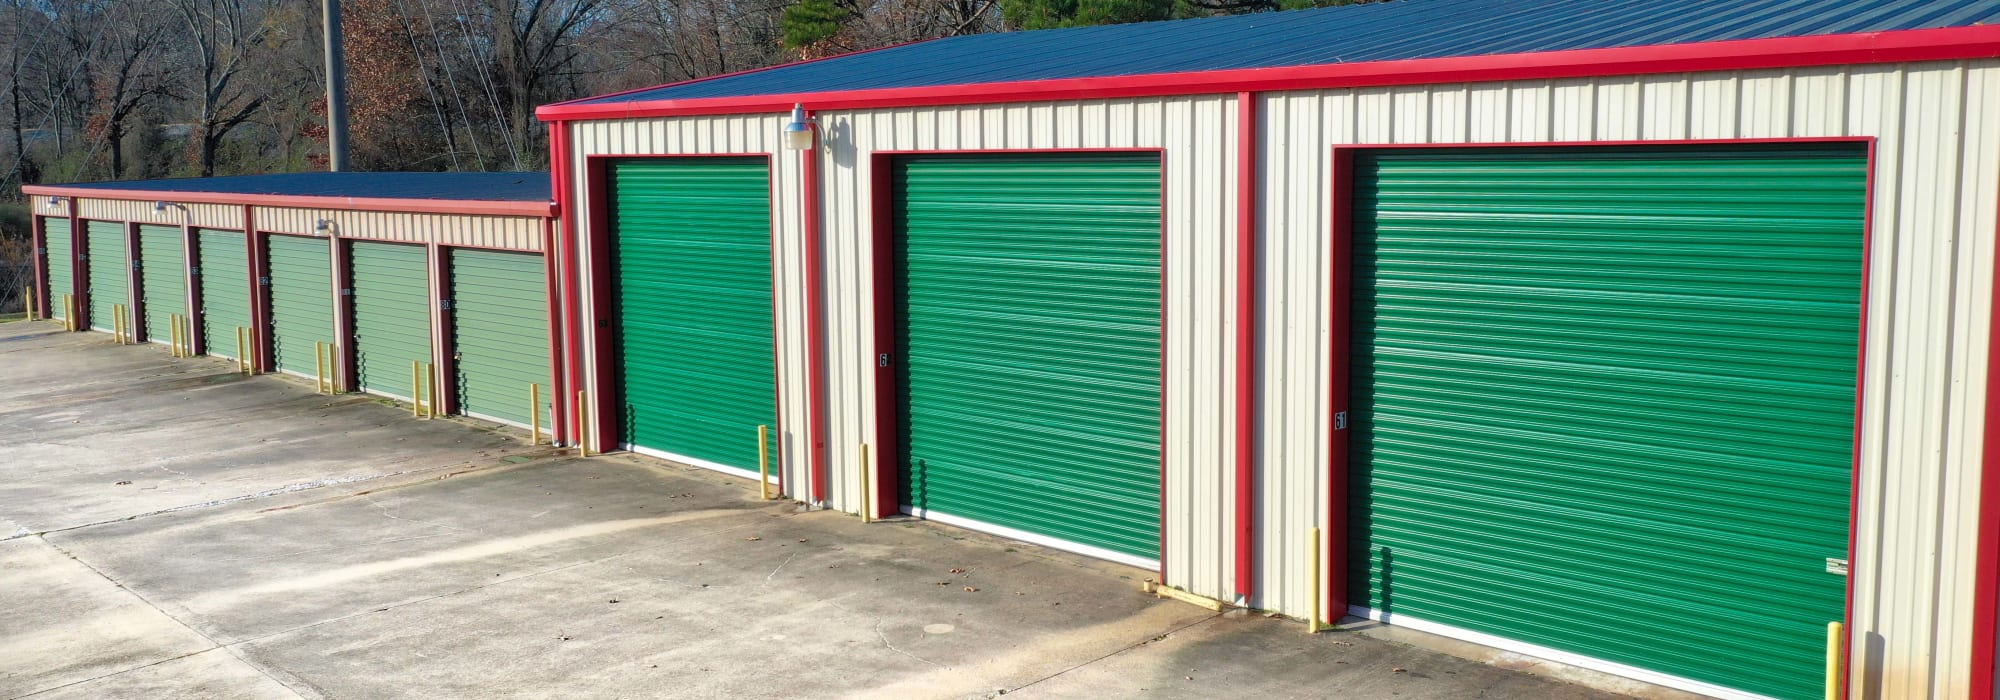 Exterior Units at Lockaway Storage in Texarkana, Texas